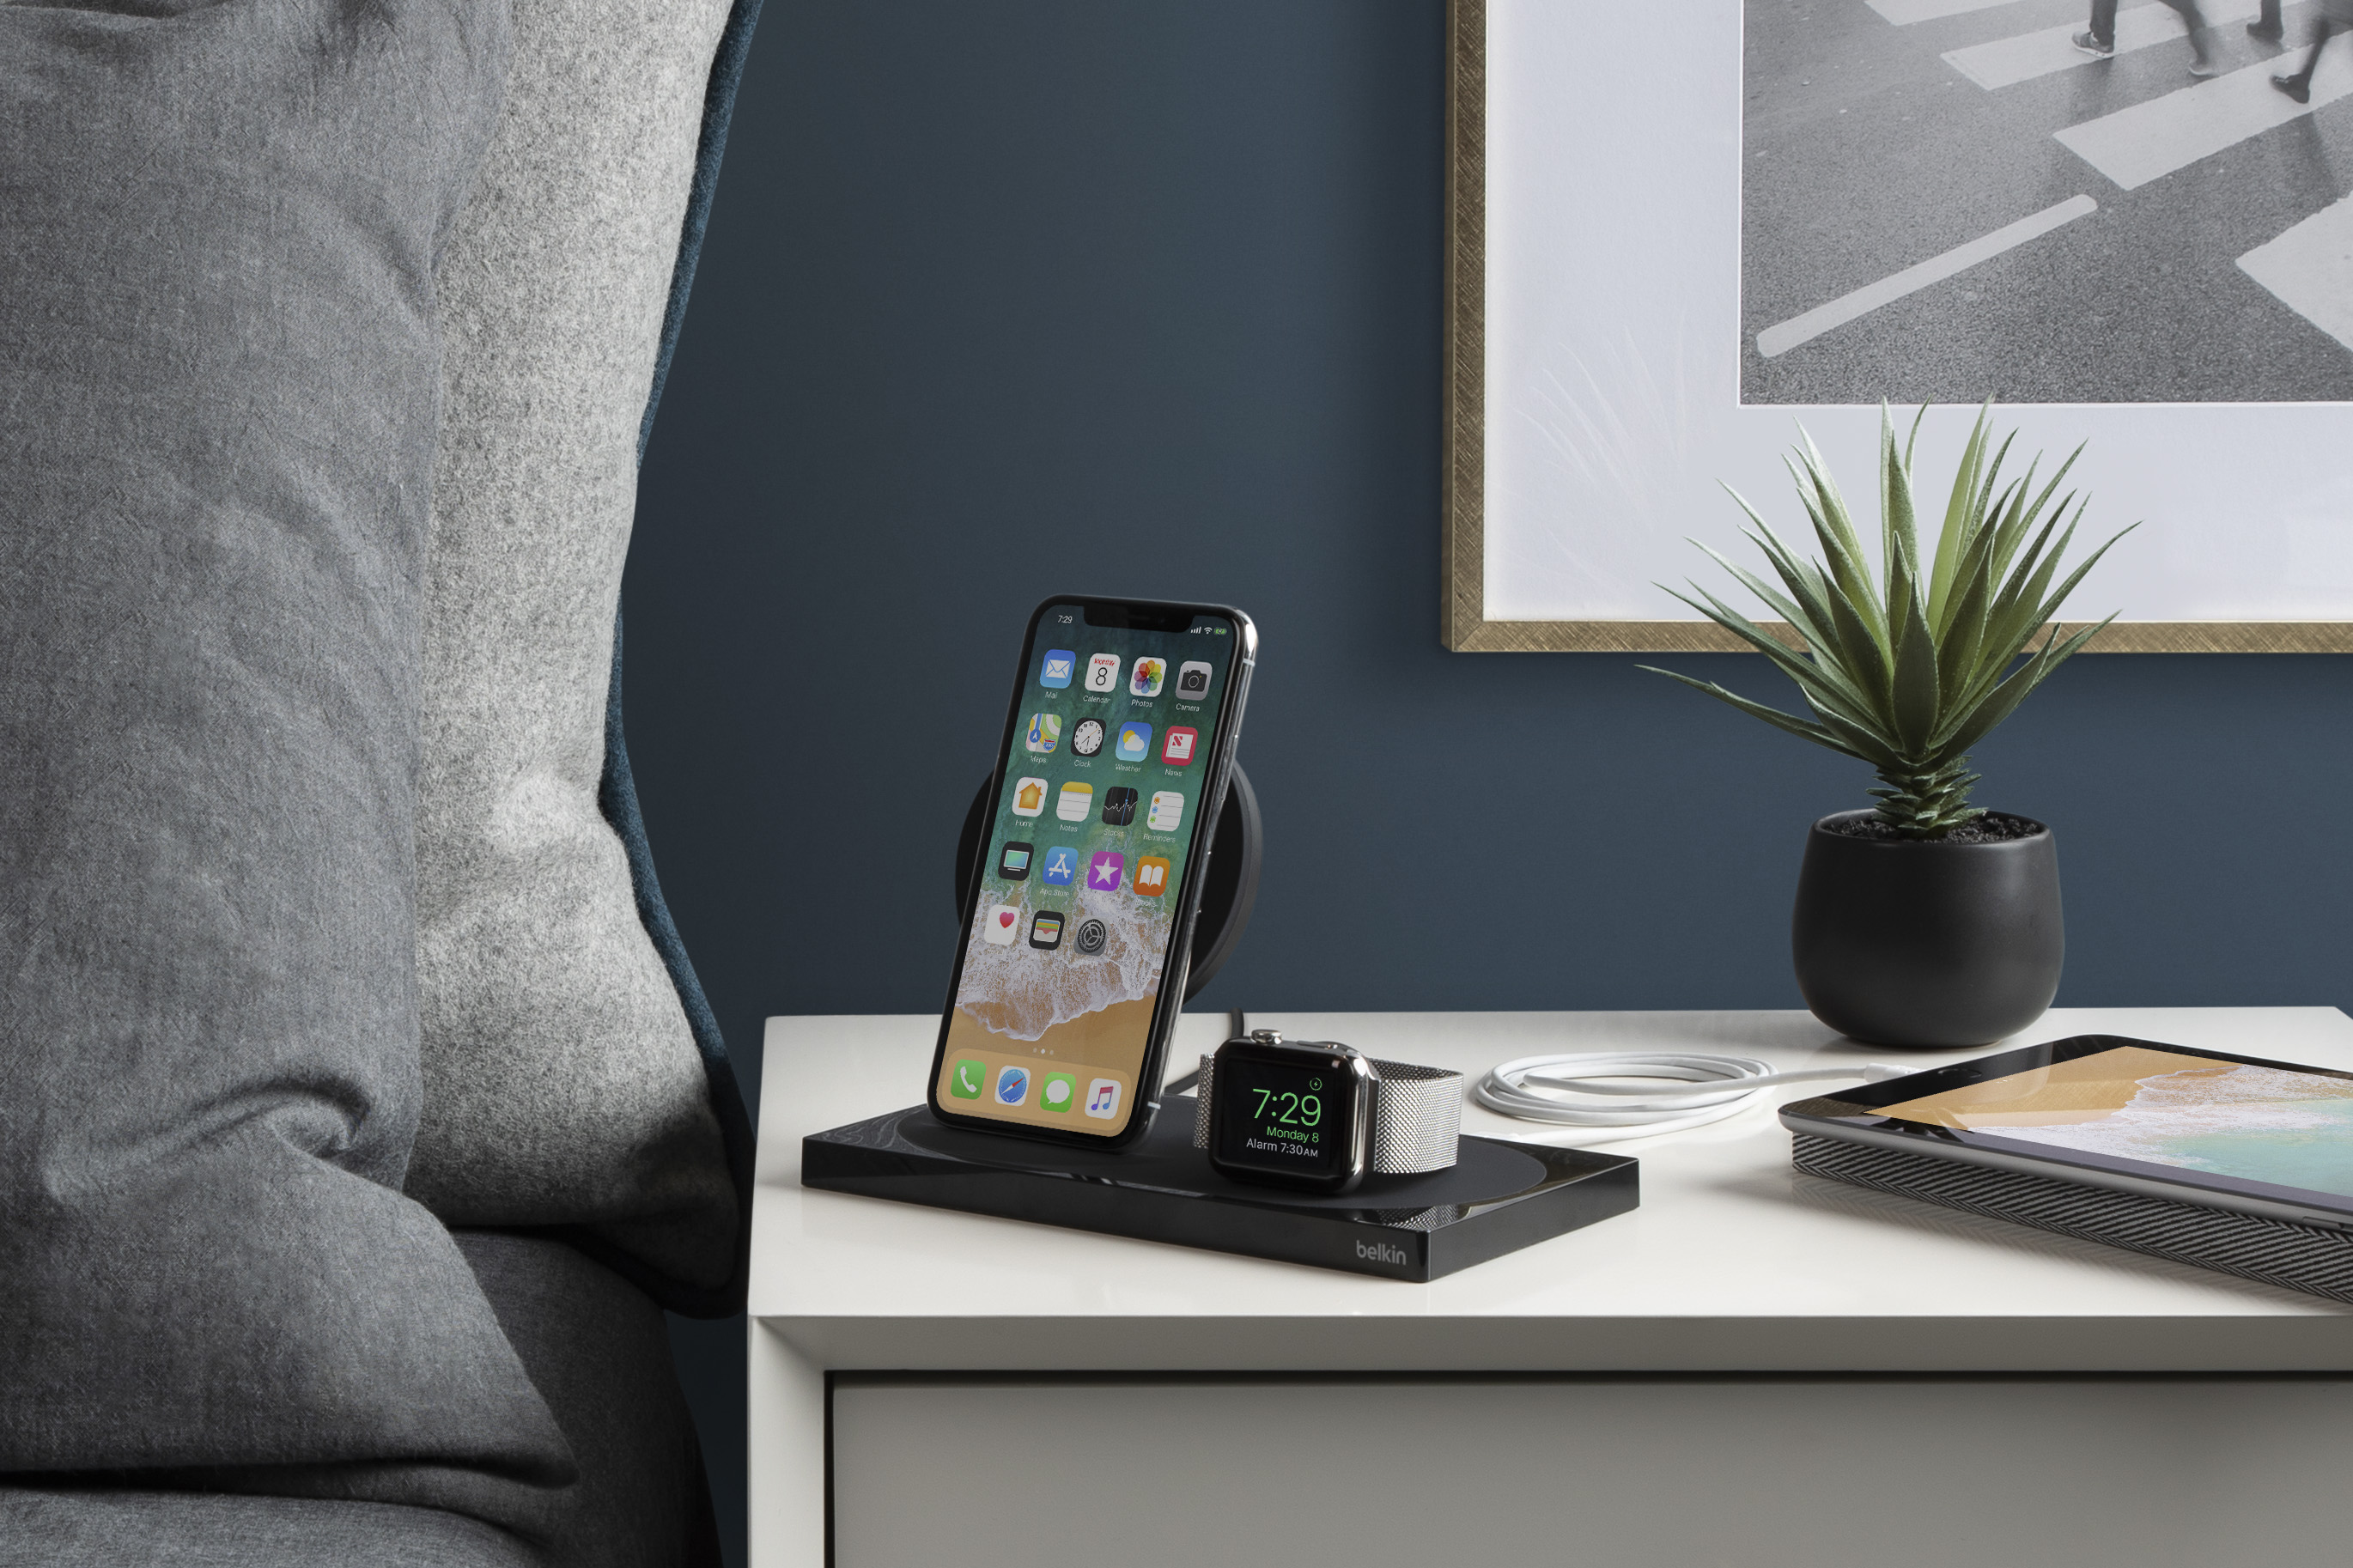 Belkin S Boostup Wireless Dock Can Charge Three Apple Devices At